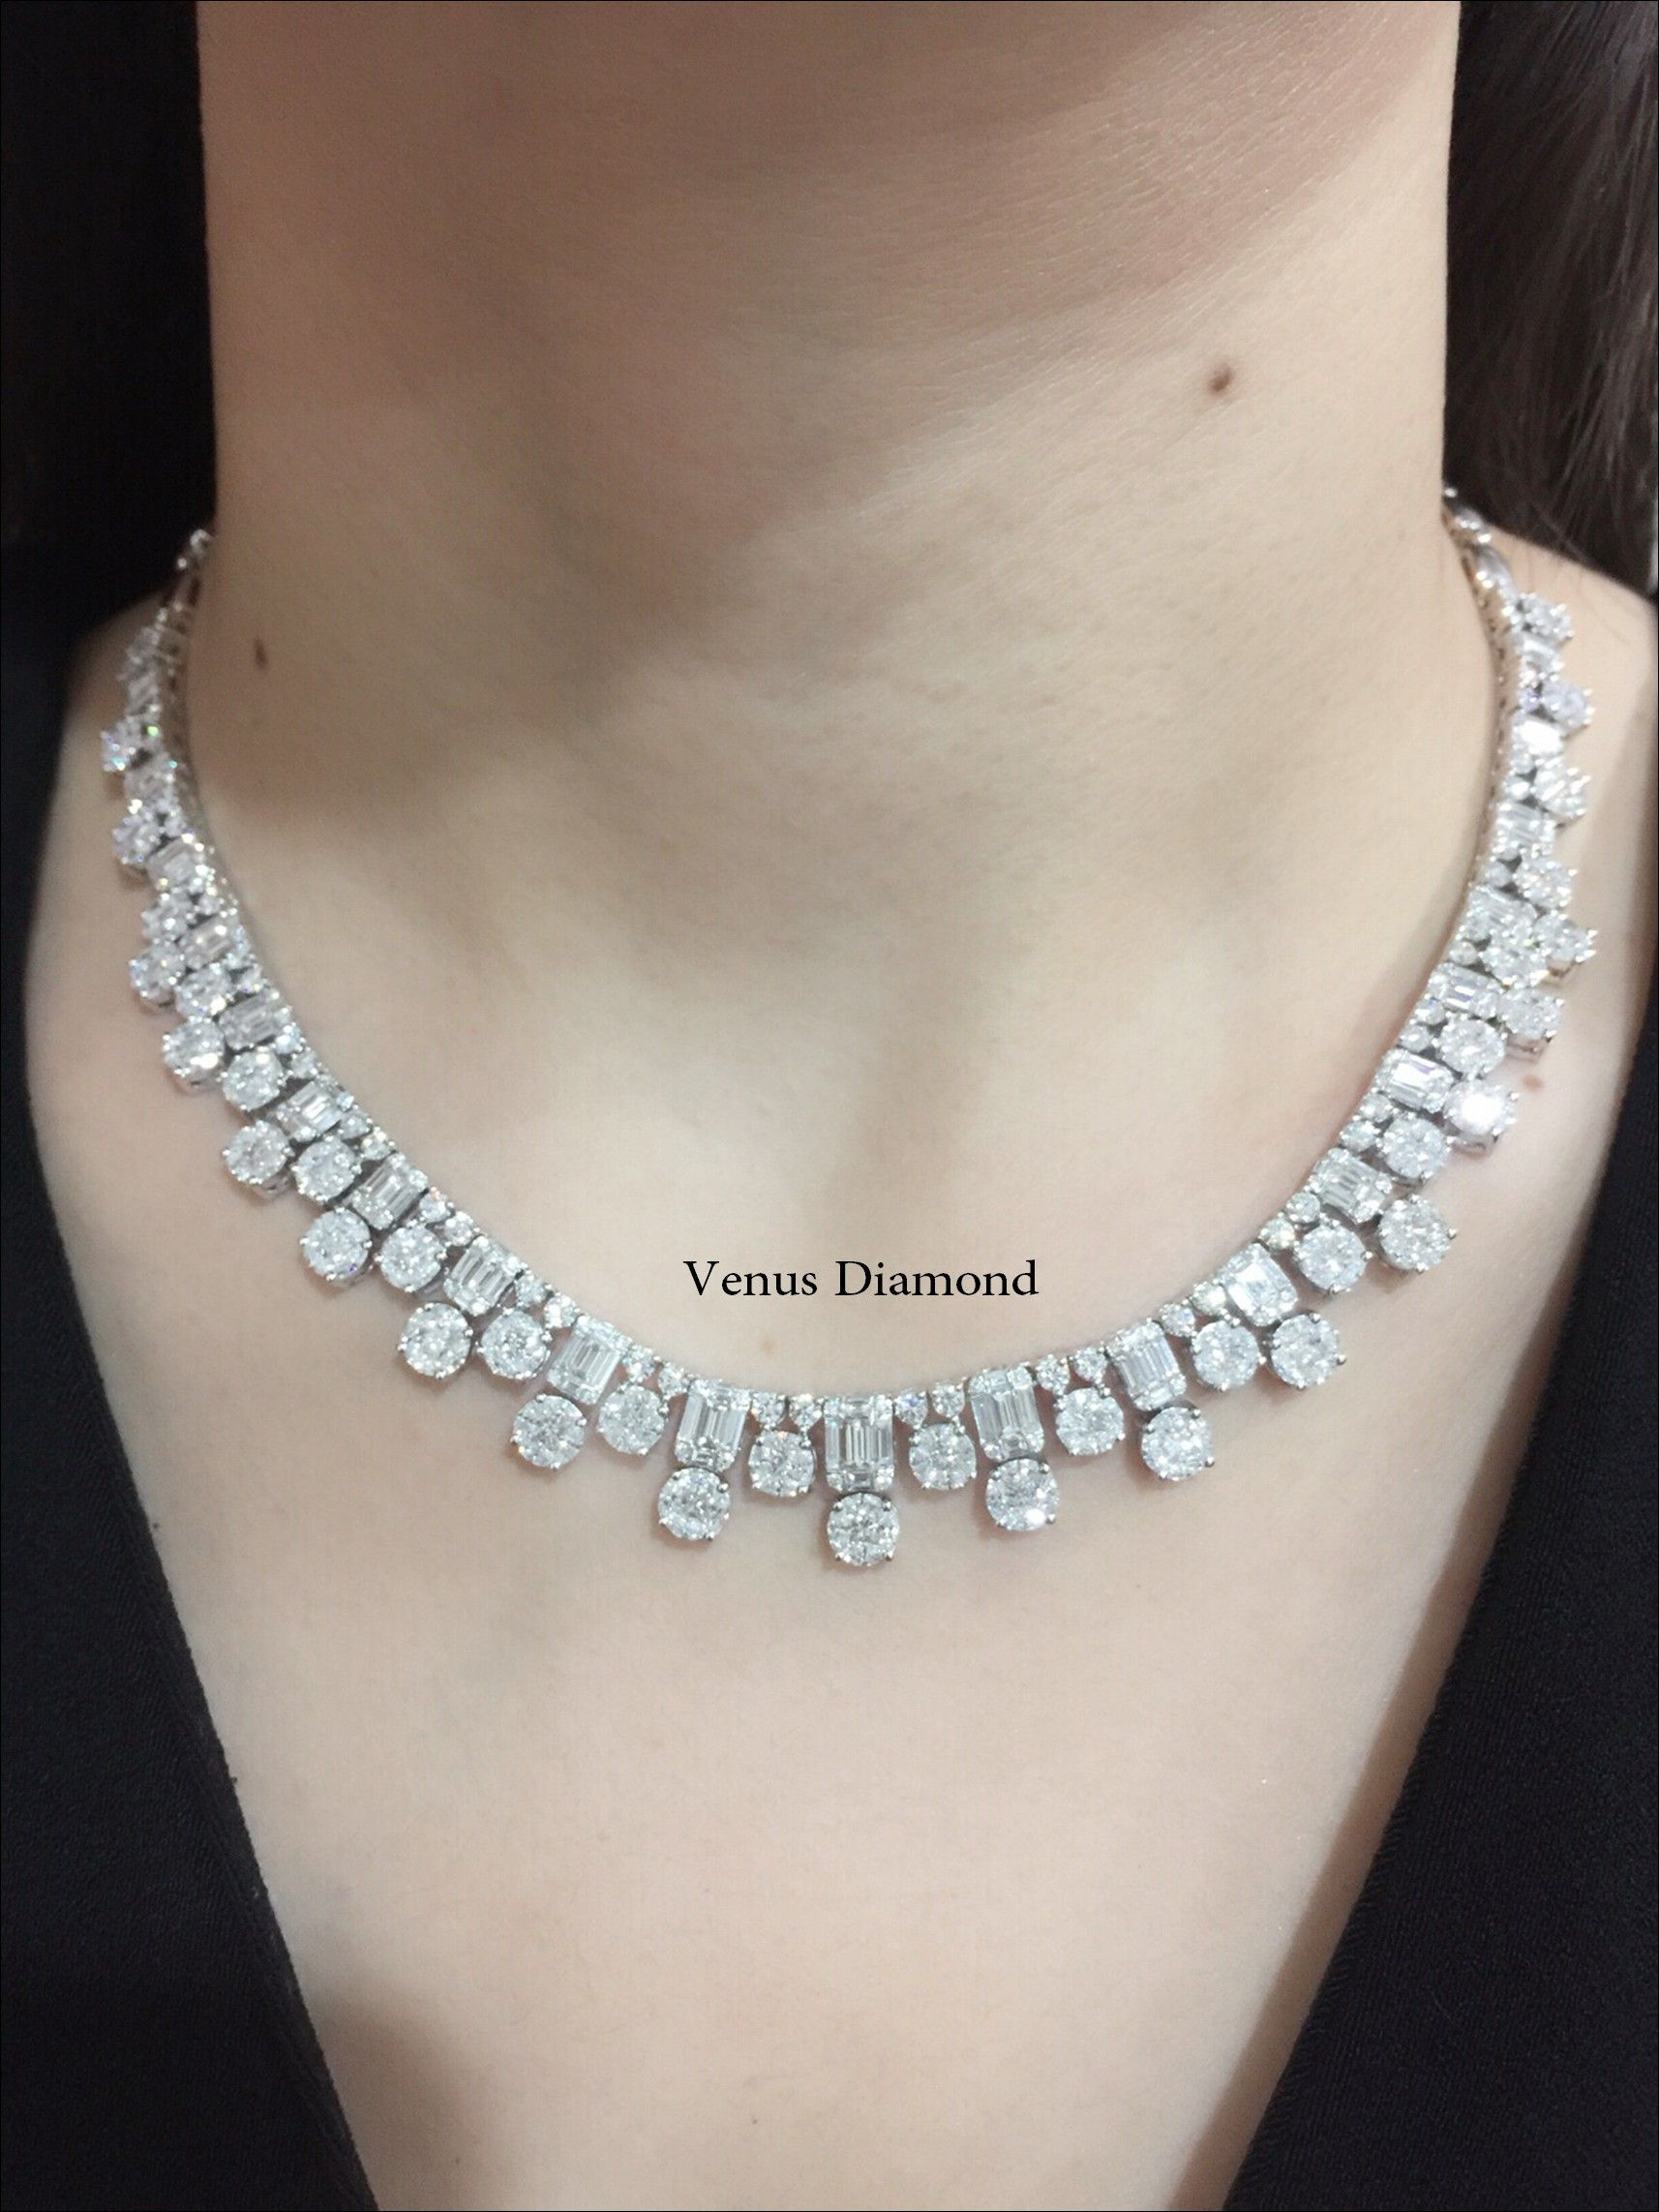 Illusion setting diamond necklace forever classic jewelry